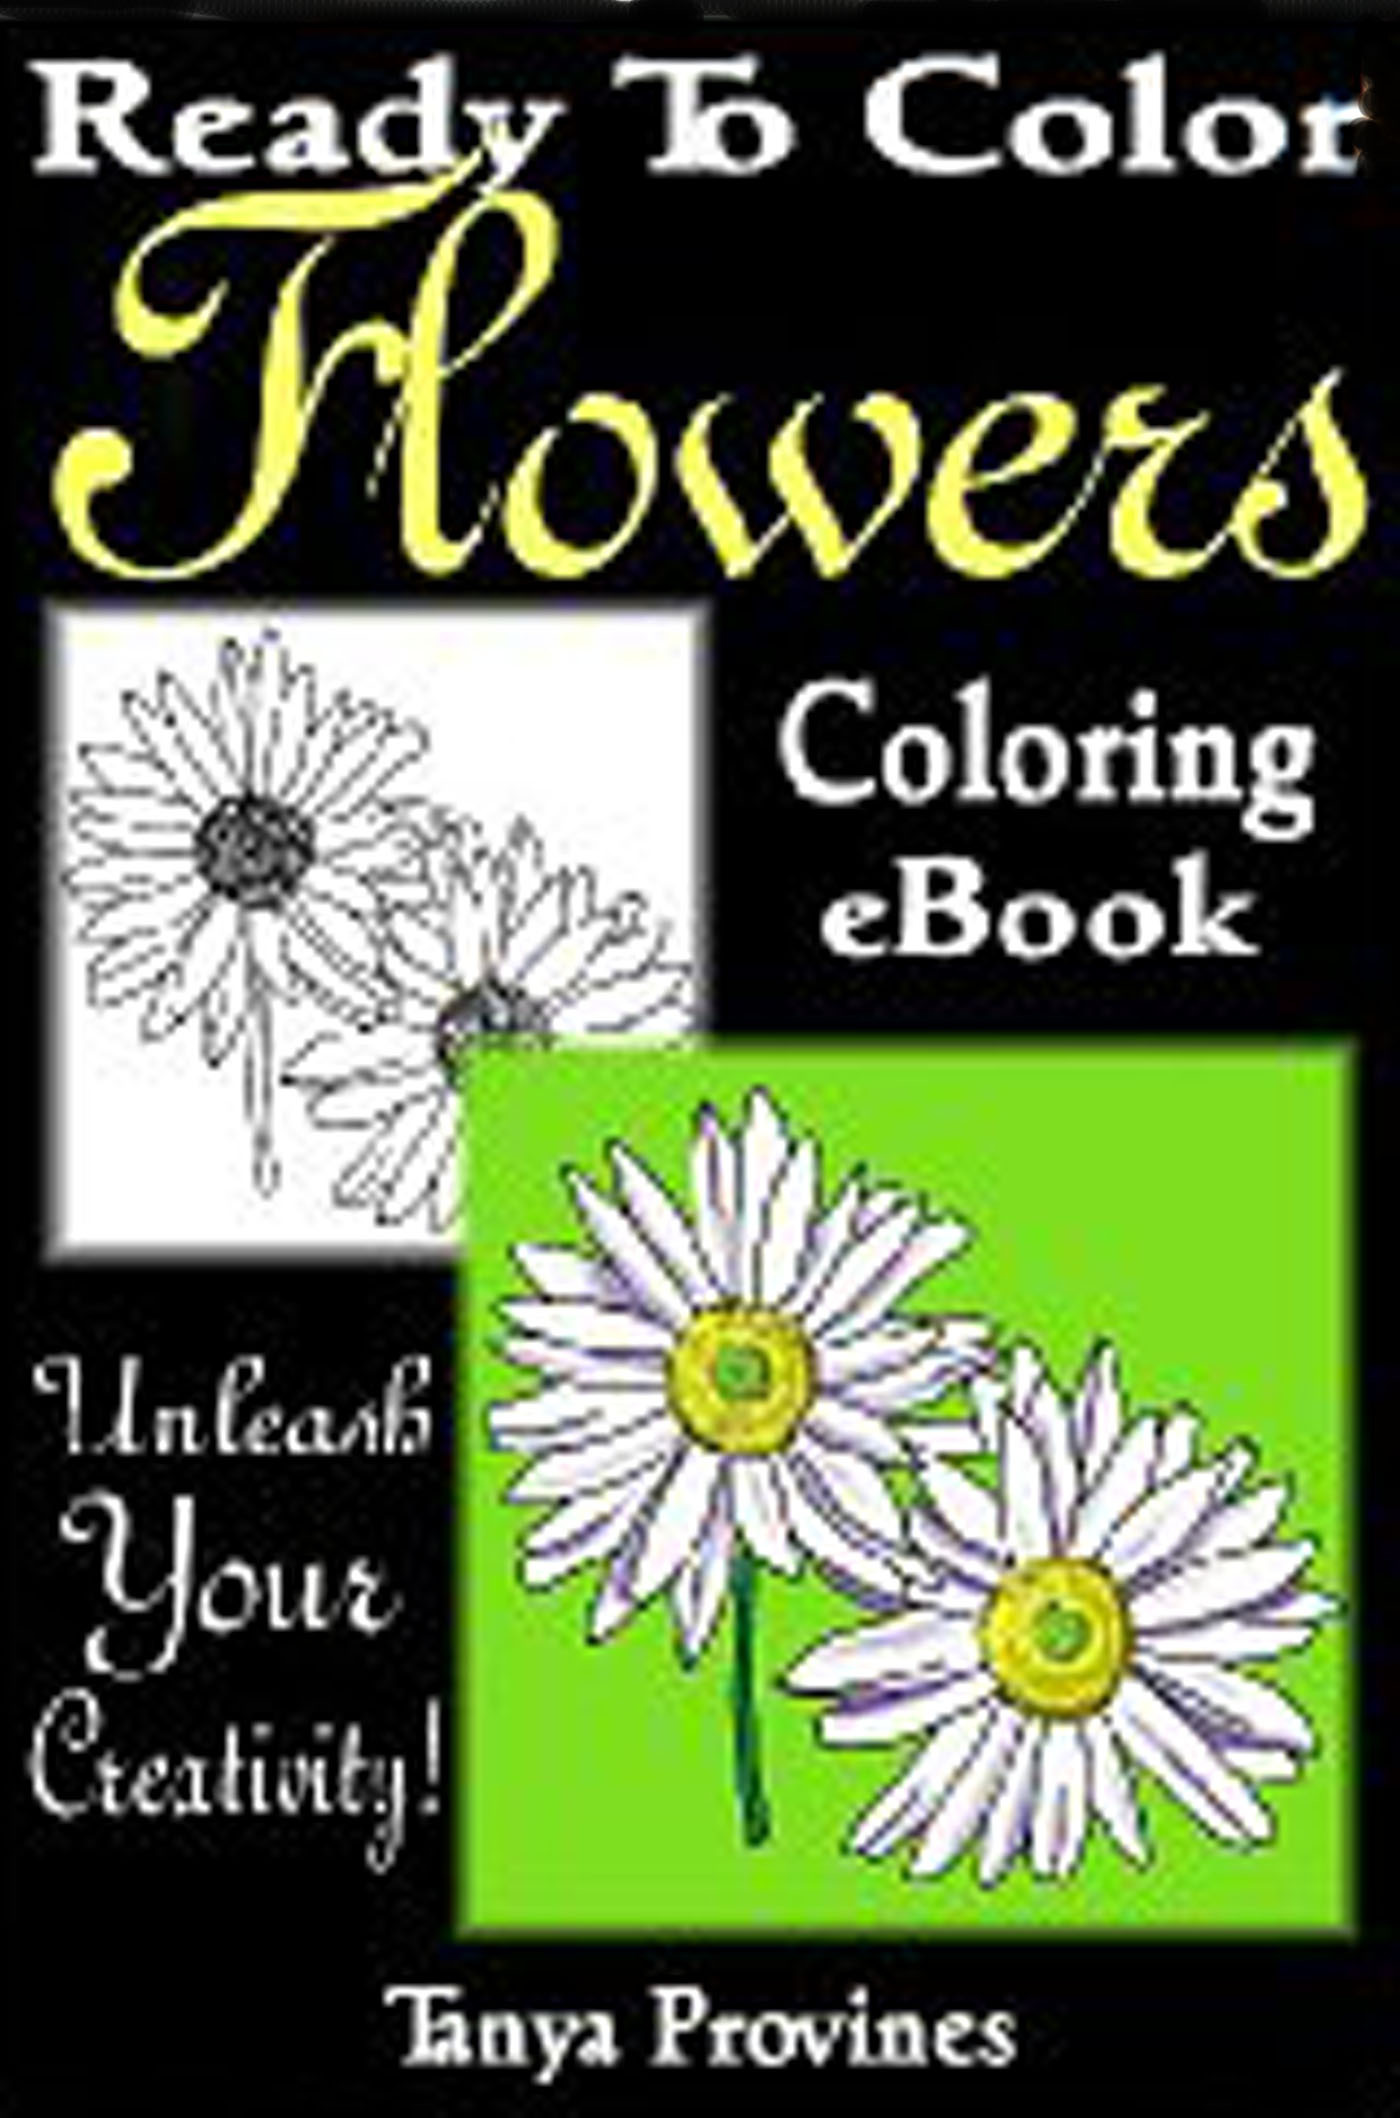 Ready To Color Flowers Coloring eBook